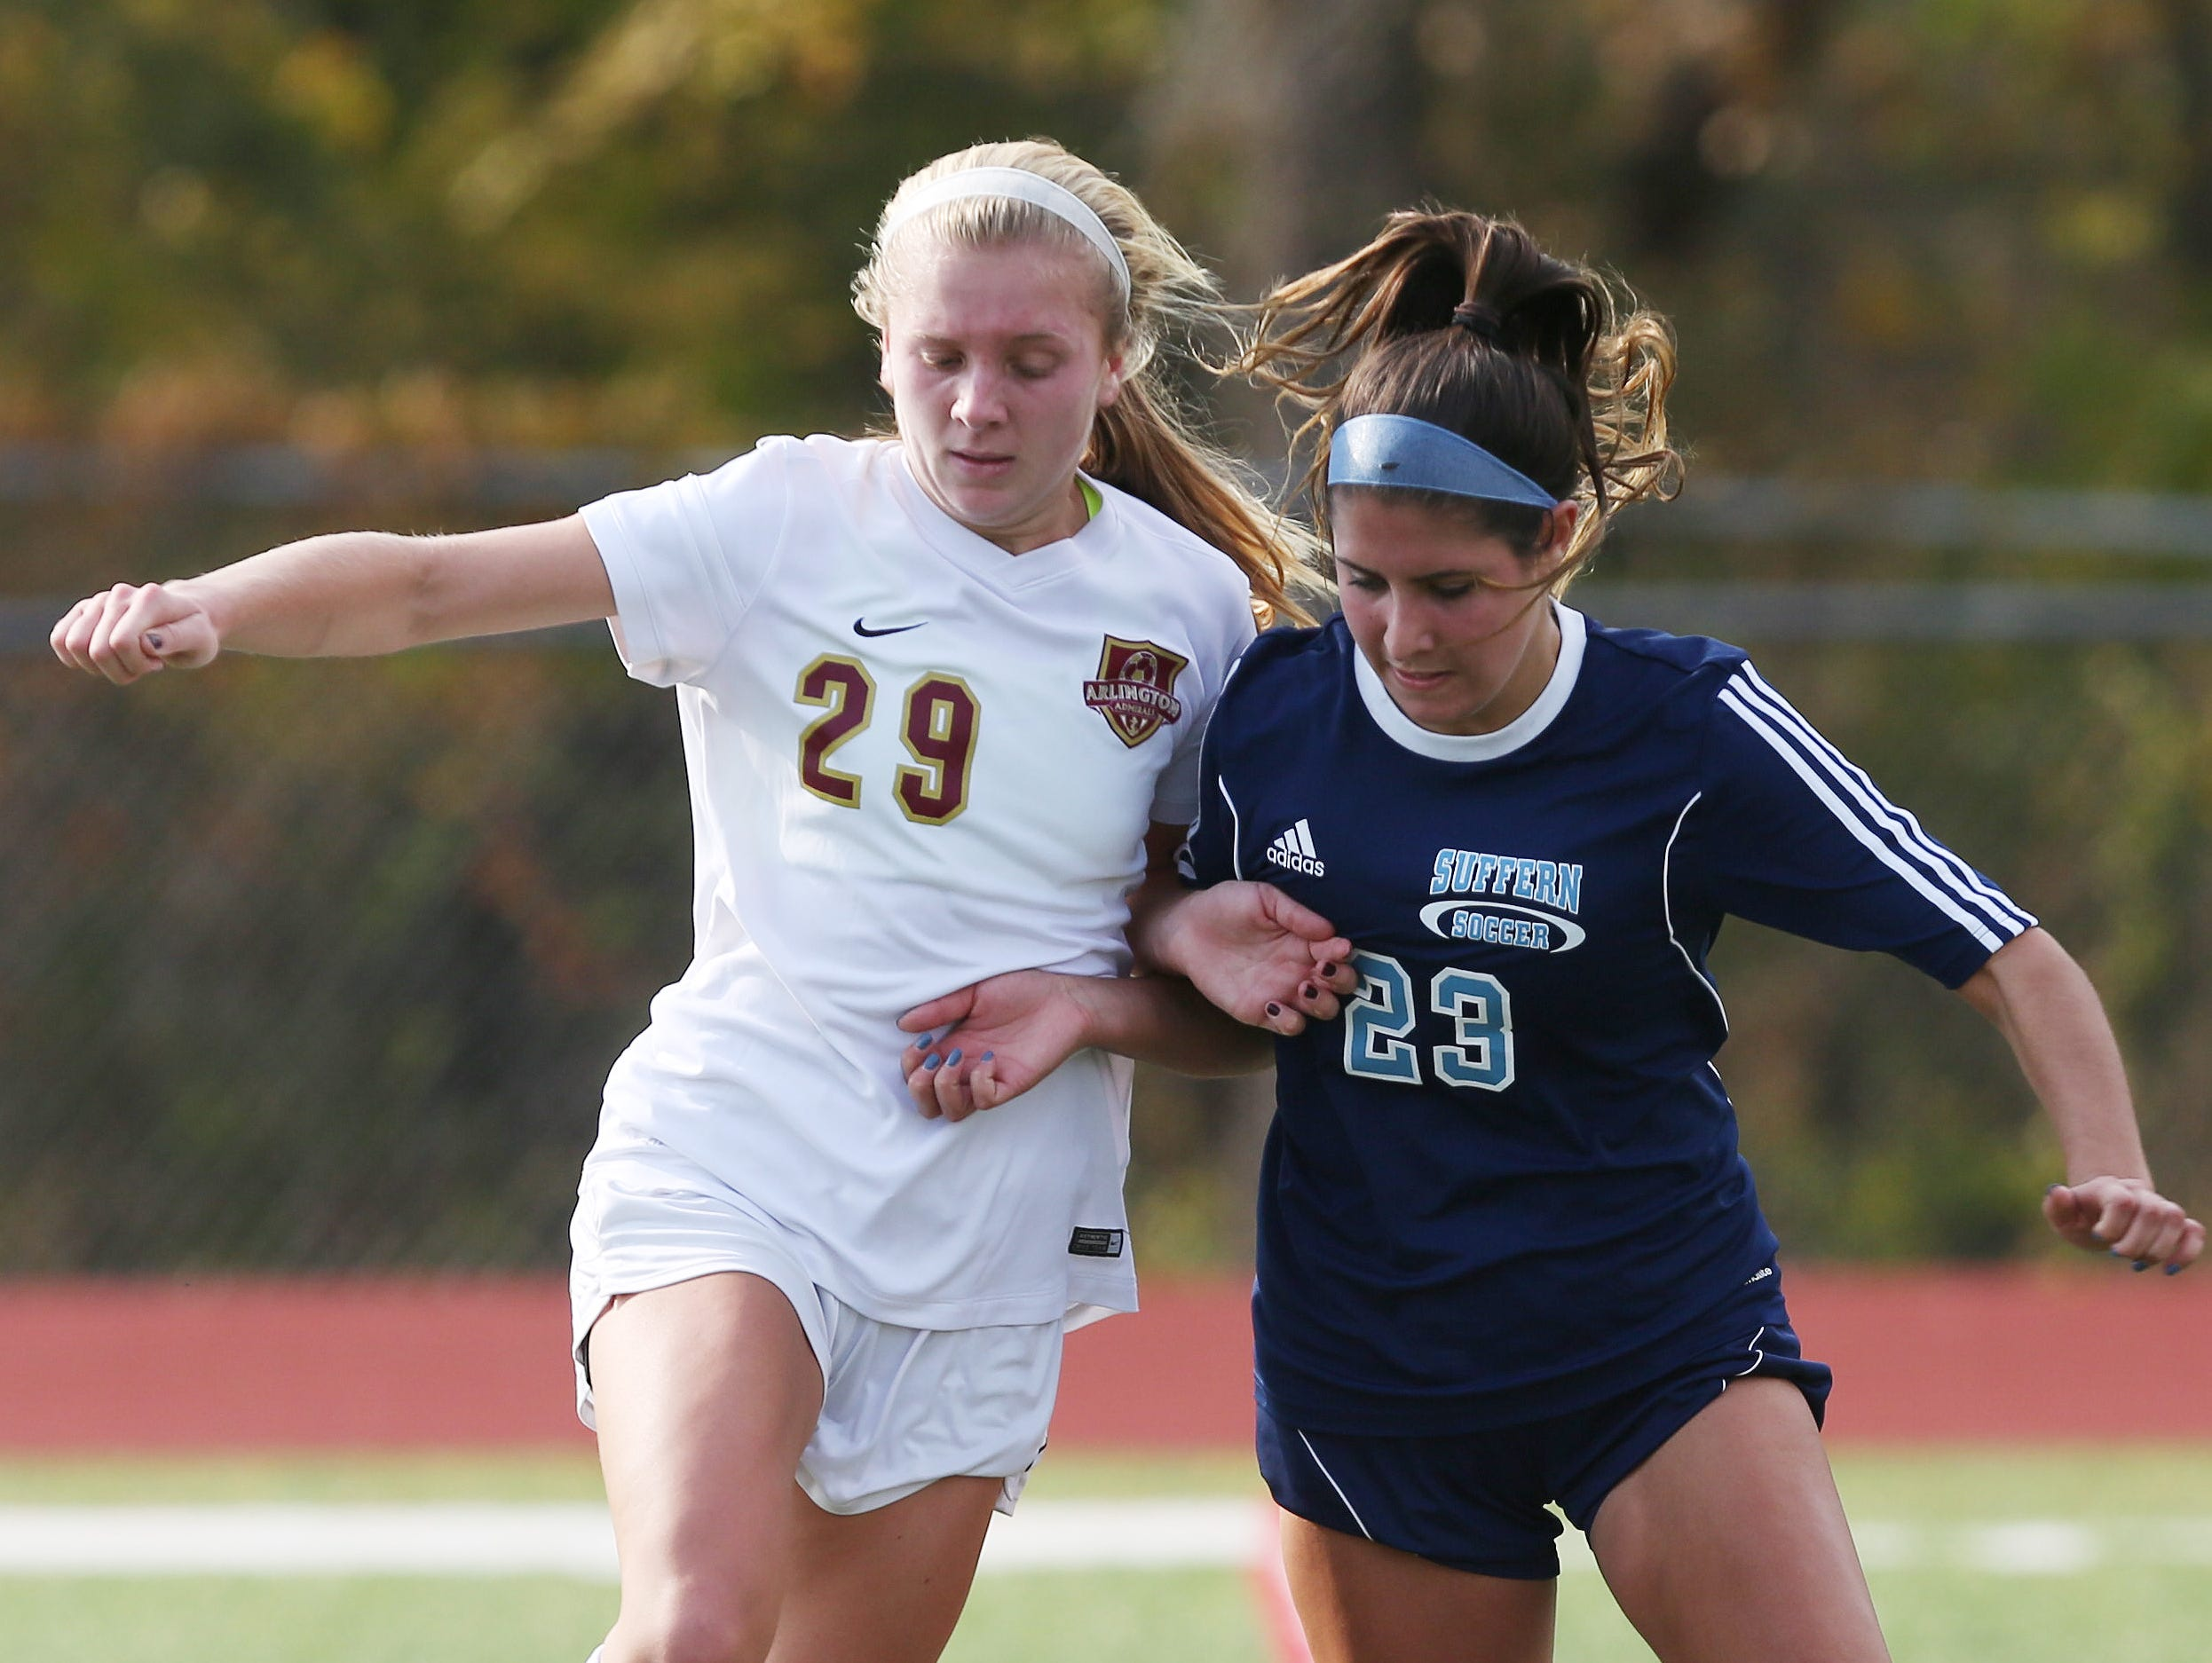 From left, Arlington's Molly Feign (29) and Suffern's Jackie Santangelo (23) battle for ball control during the girls soccer Section 1 Class AA championship game at Yorktown High School Oct. 30, 2016. Arlington won the game 2-0.